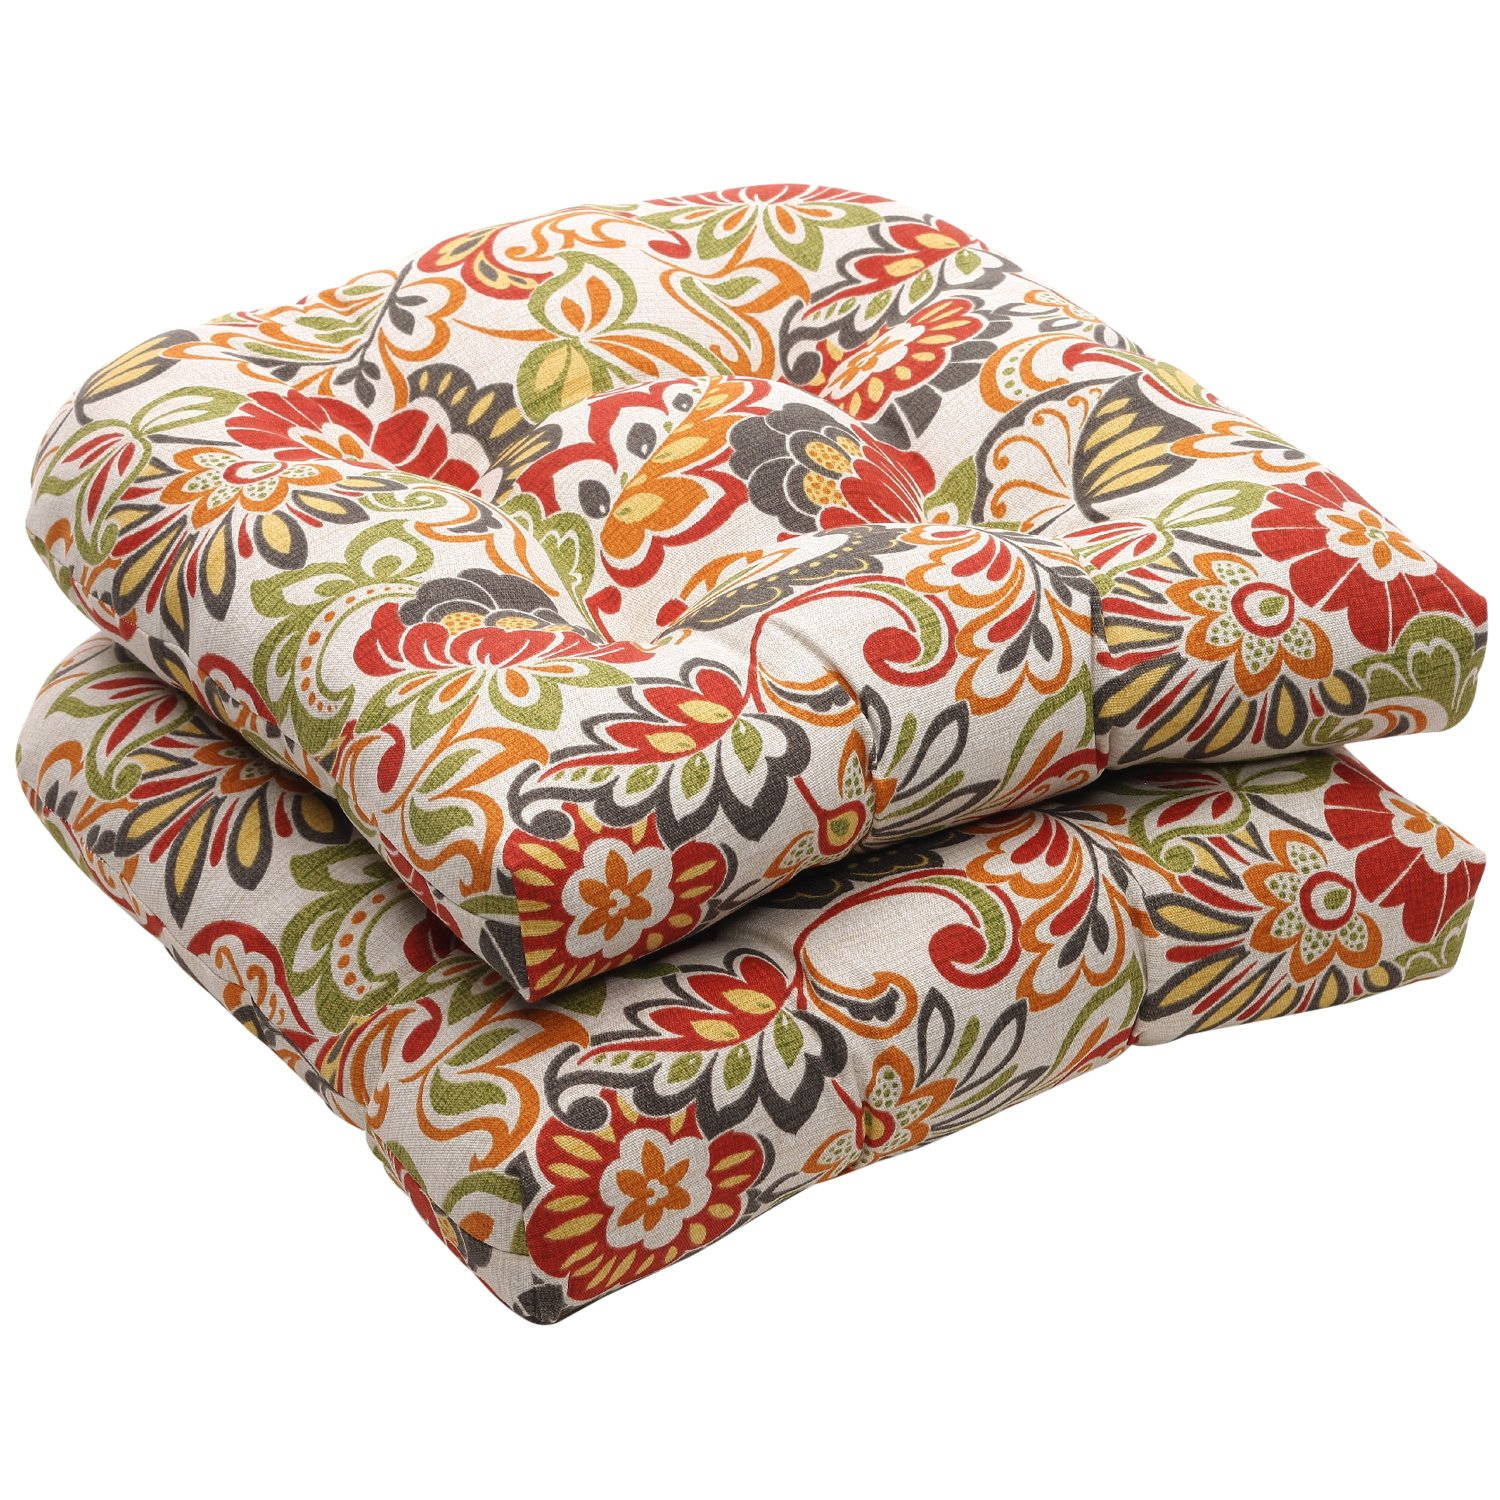 2 seat cushion pillow for outdoor patio furniture porch for Chair pillow